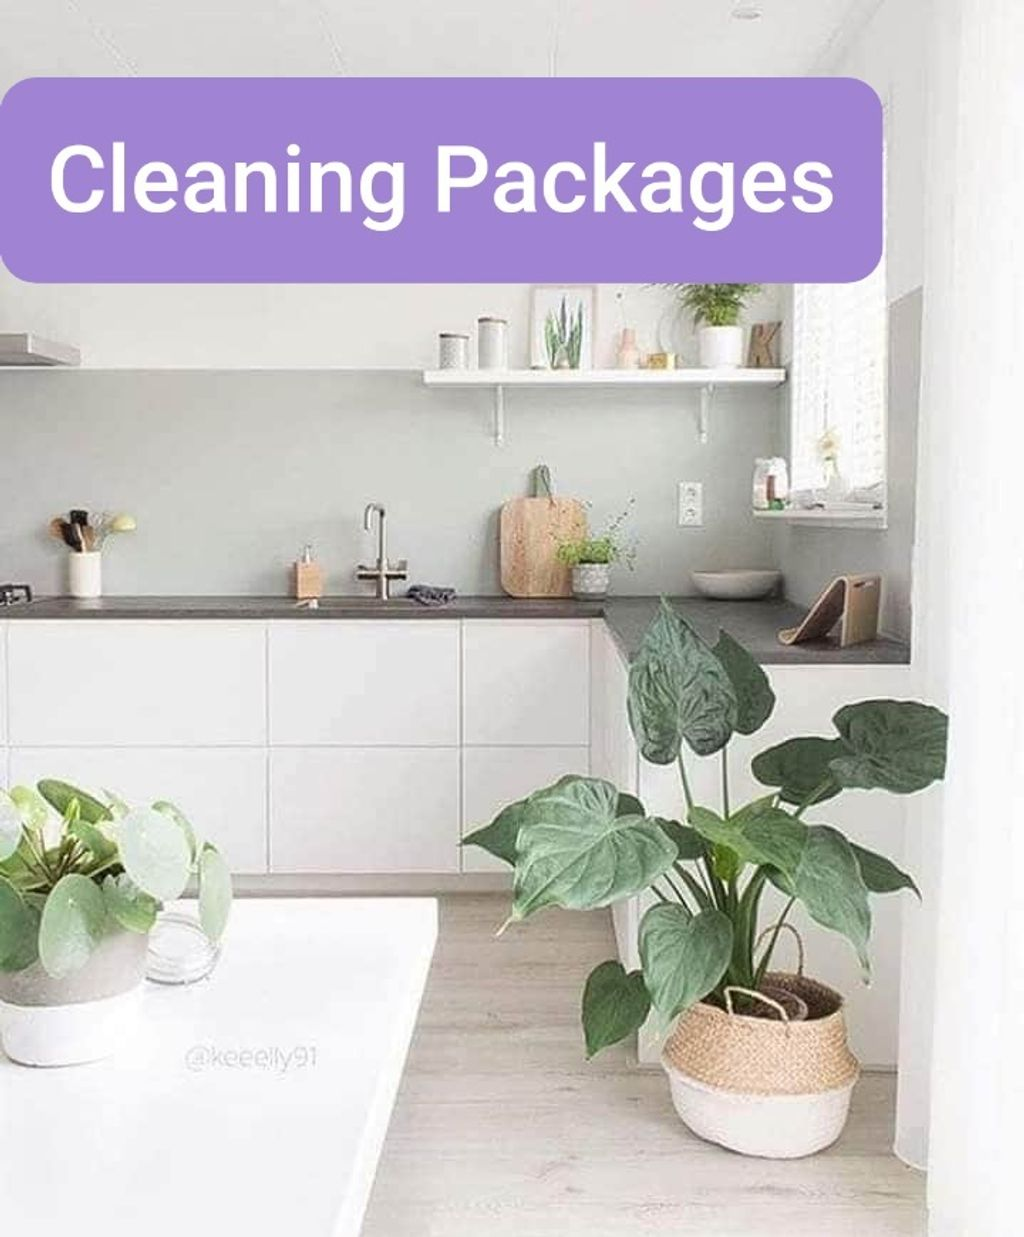 When to hire cleaner?